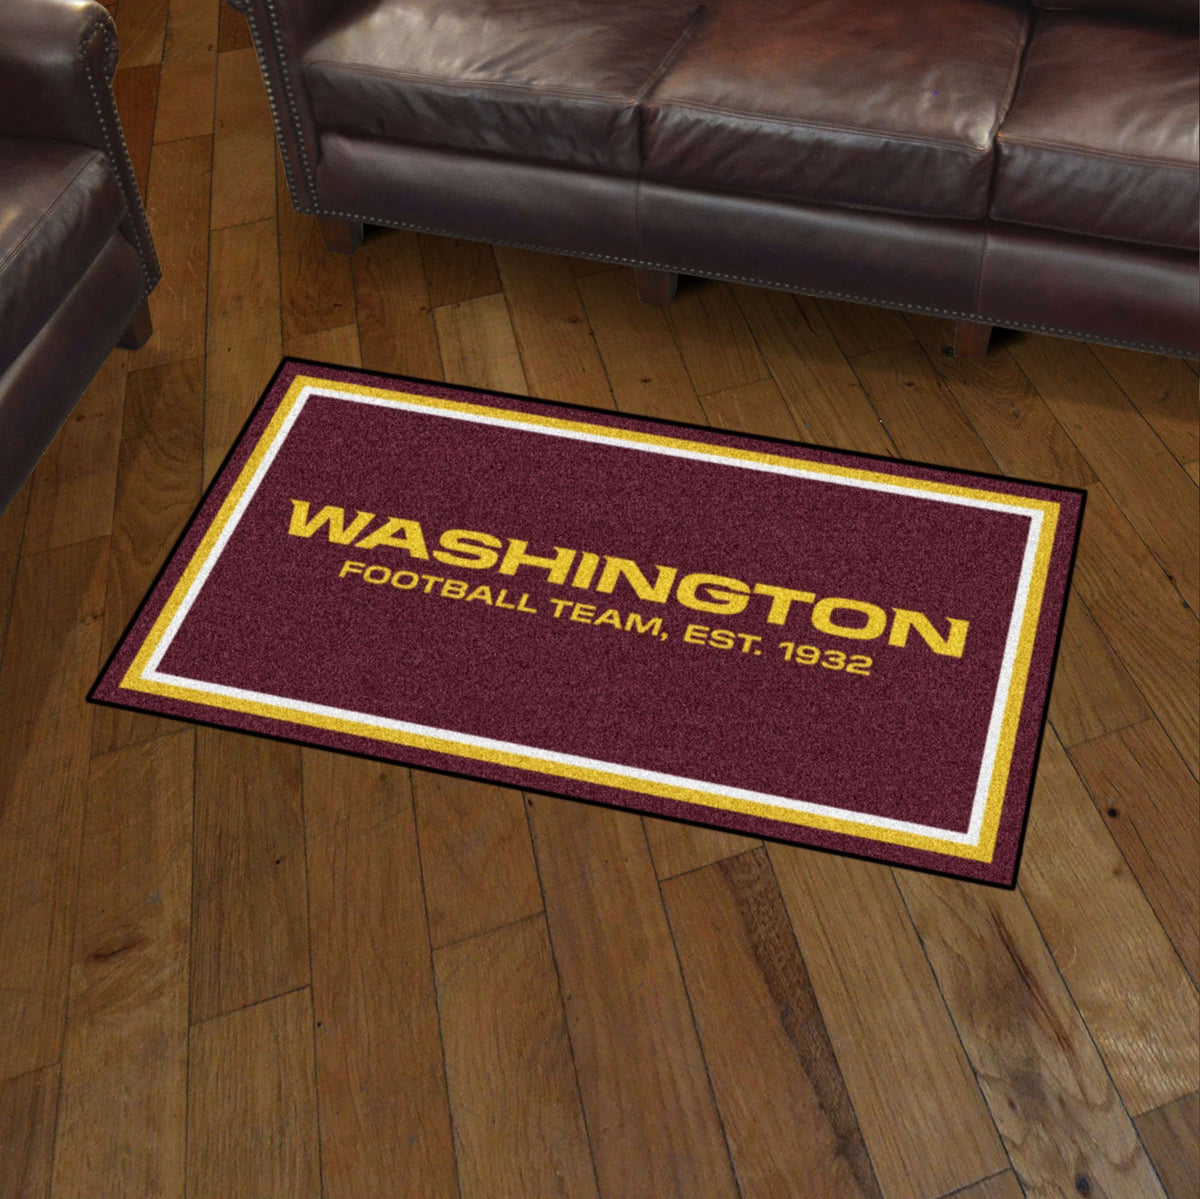 NFL - 3' x 5' Rug NFL Mats, Plush Rugs, 3x5 Rug, NFL, Home Fan Mats Washington Redskins